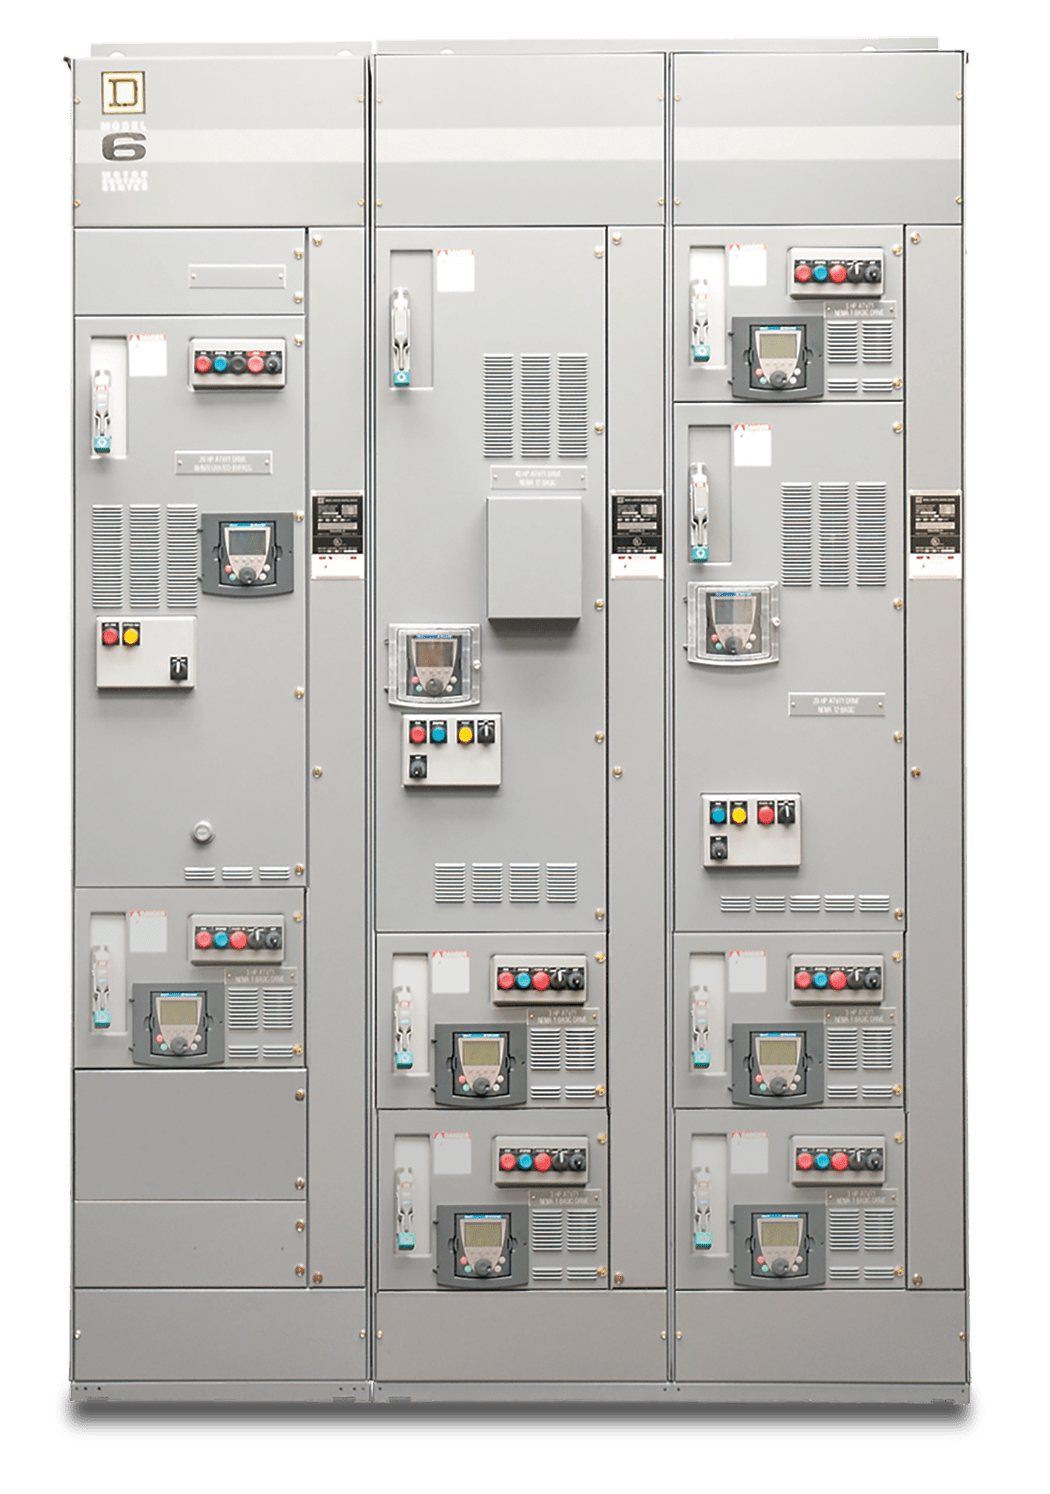 Power Distribution and Controls